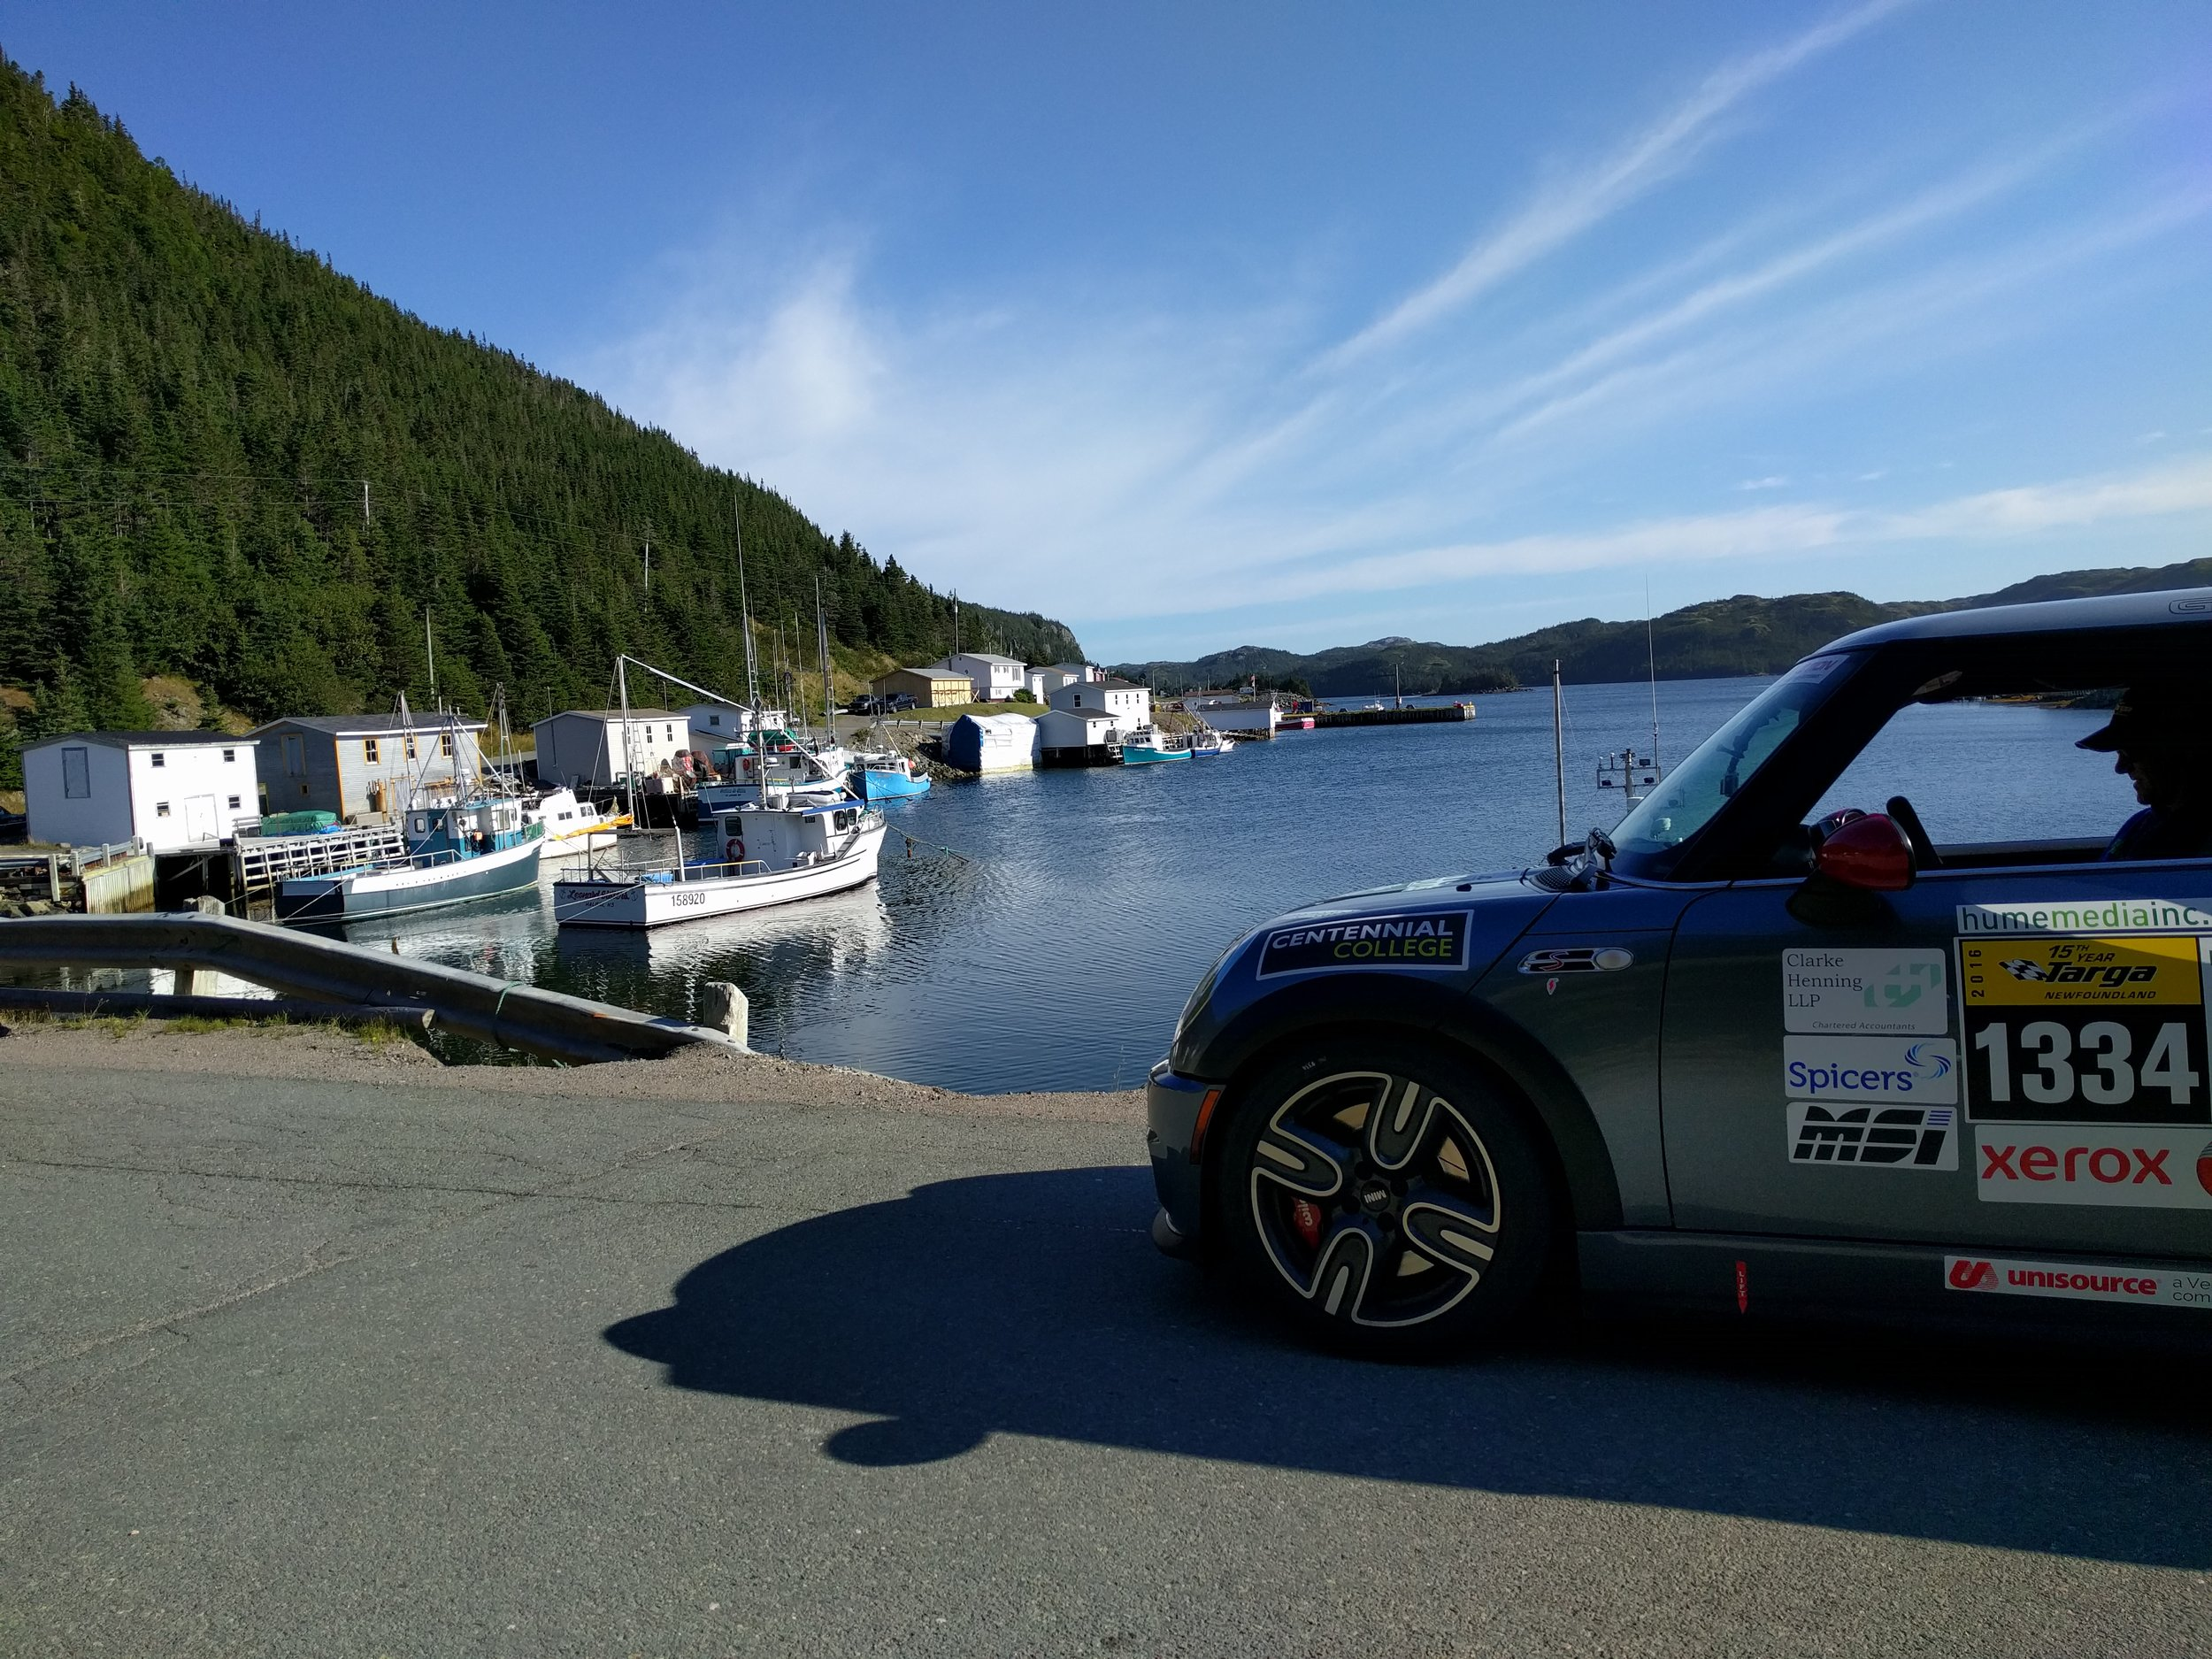 Our team car 1334 overlooking the bay